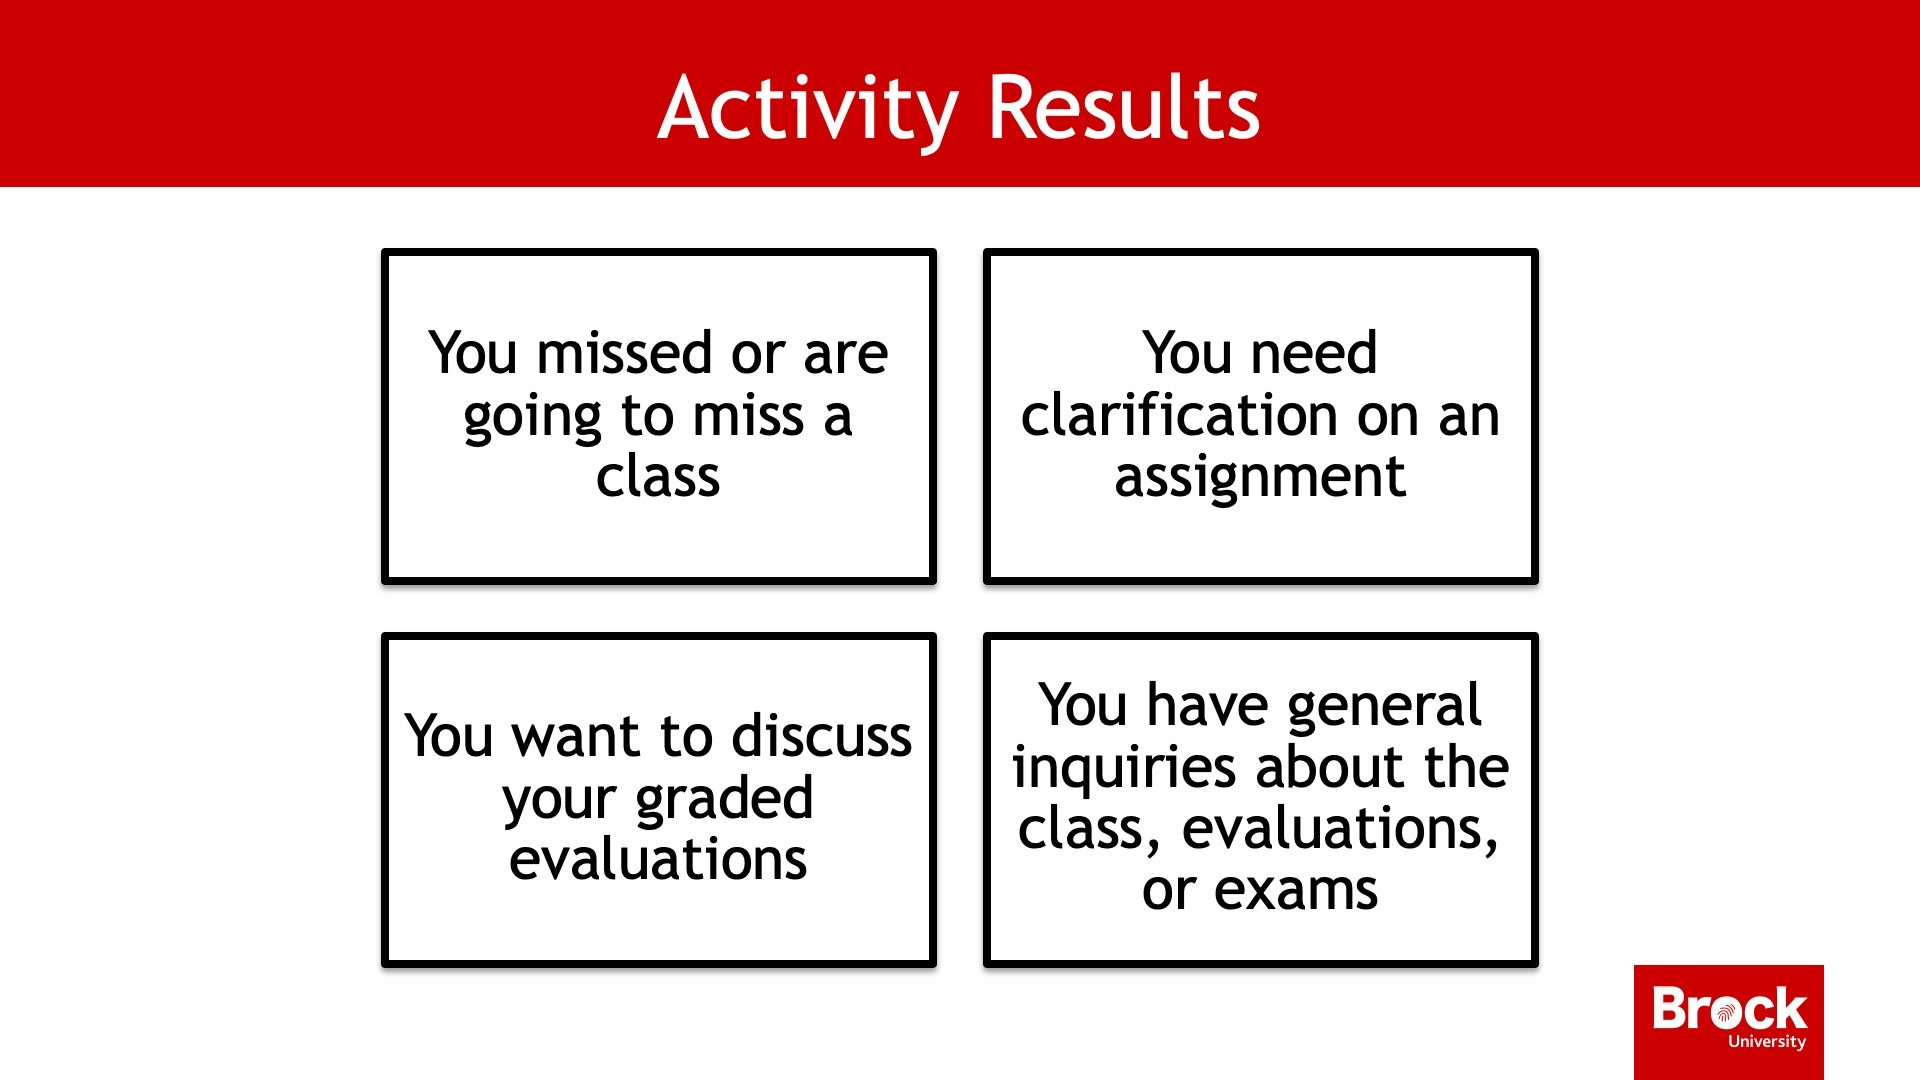 Activity results